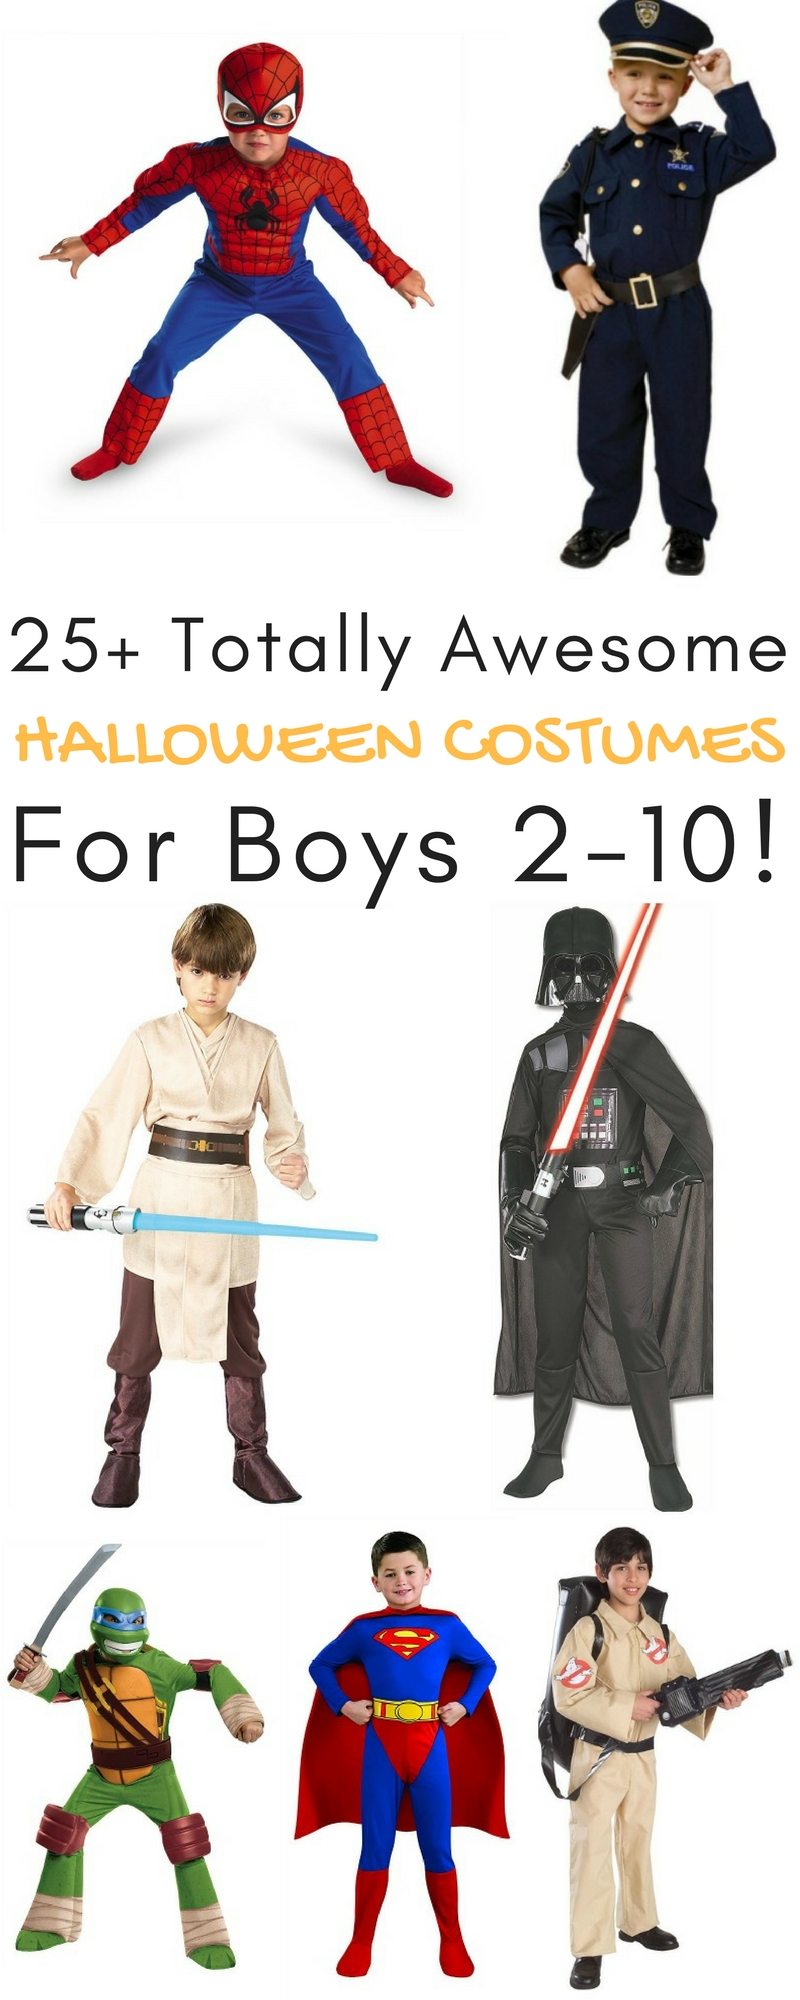 25+ Totally Awesome Halloween Costumes for Boys 2-10!